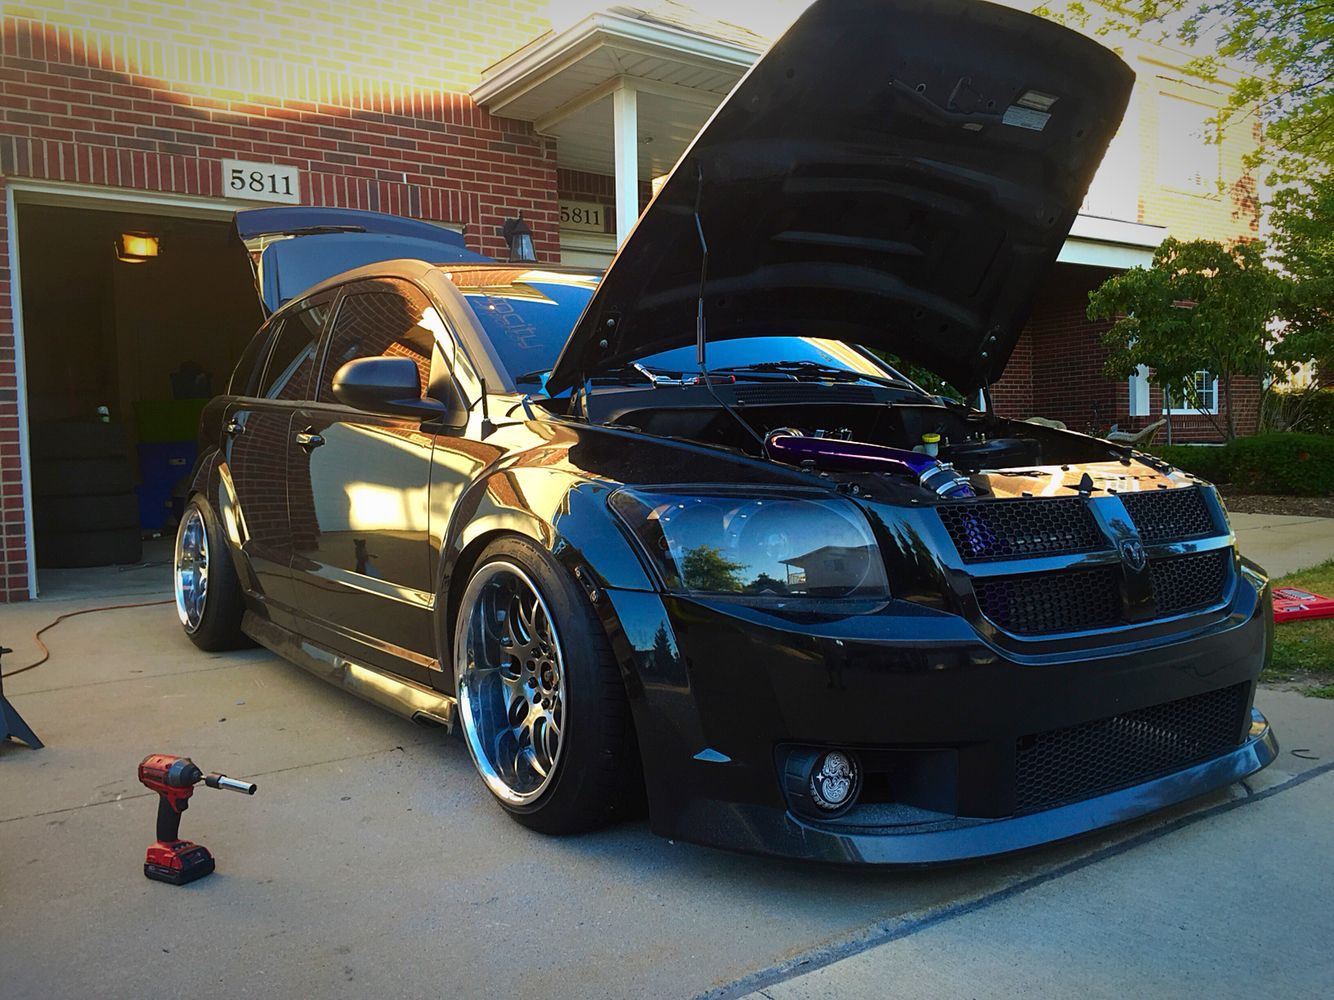 dodge caliber srt4 dodge csrt4 stance low stancenation cars pinterest dodge caliber. Black Bedroom Furniture Sets. Home Design Ideas